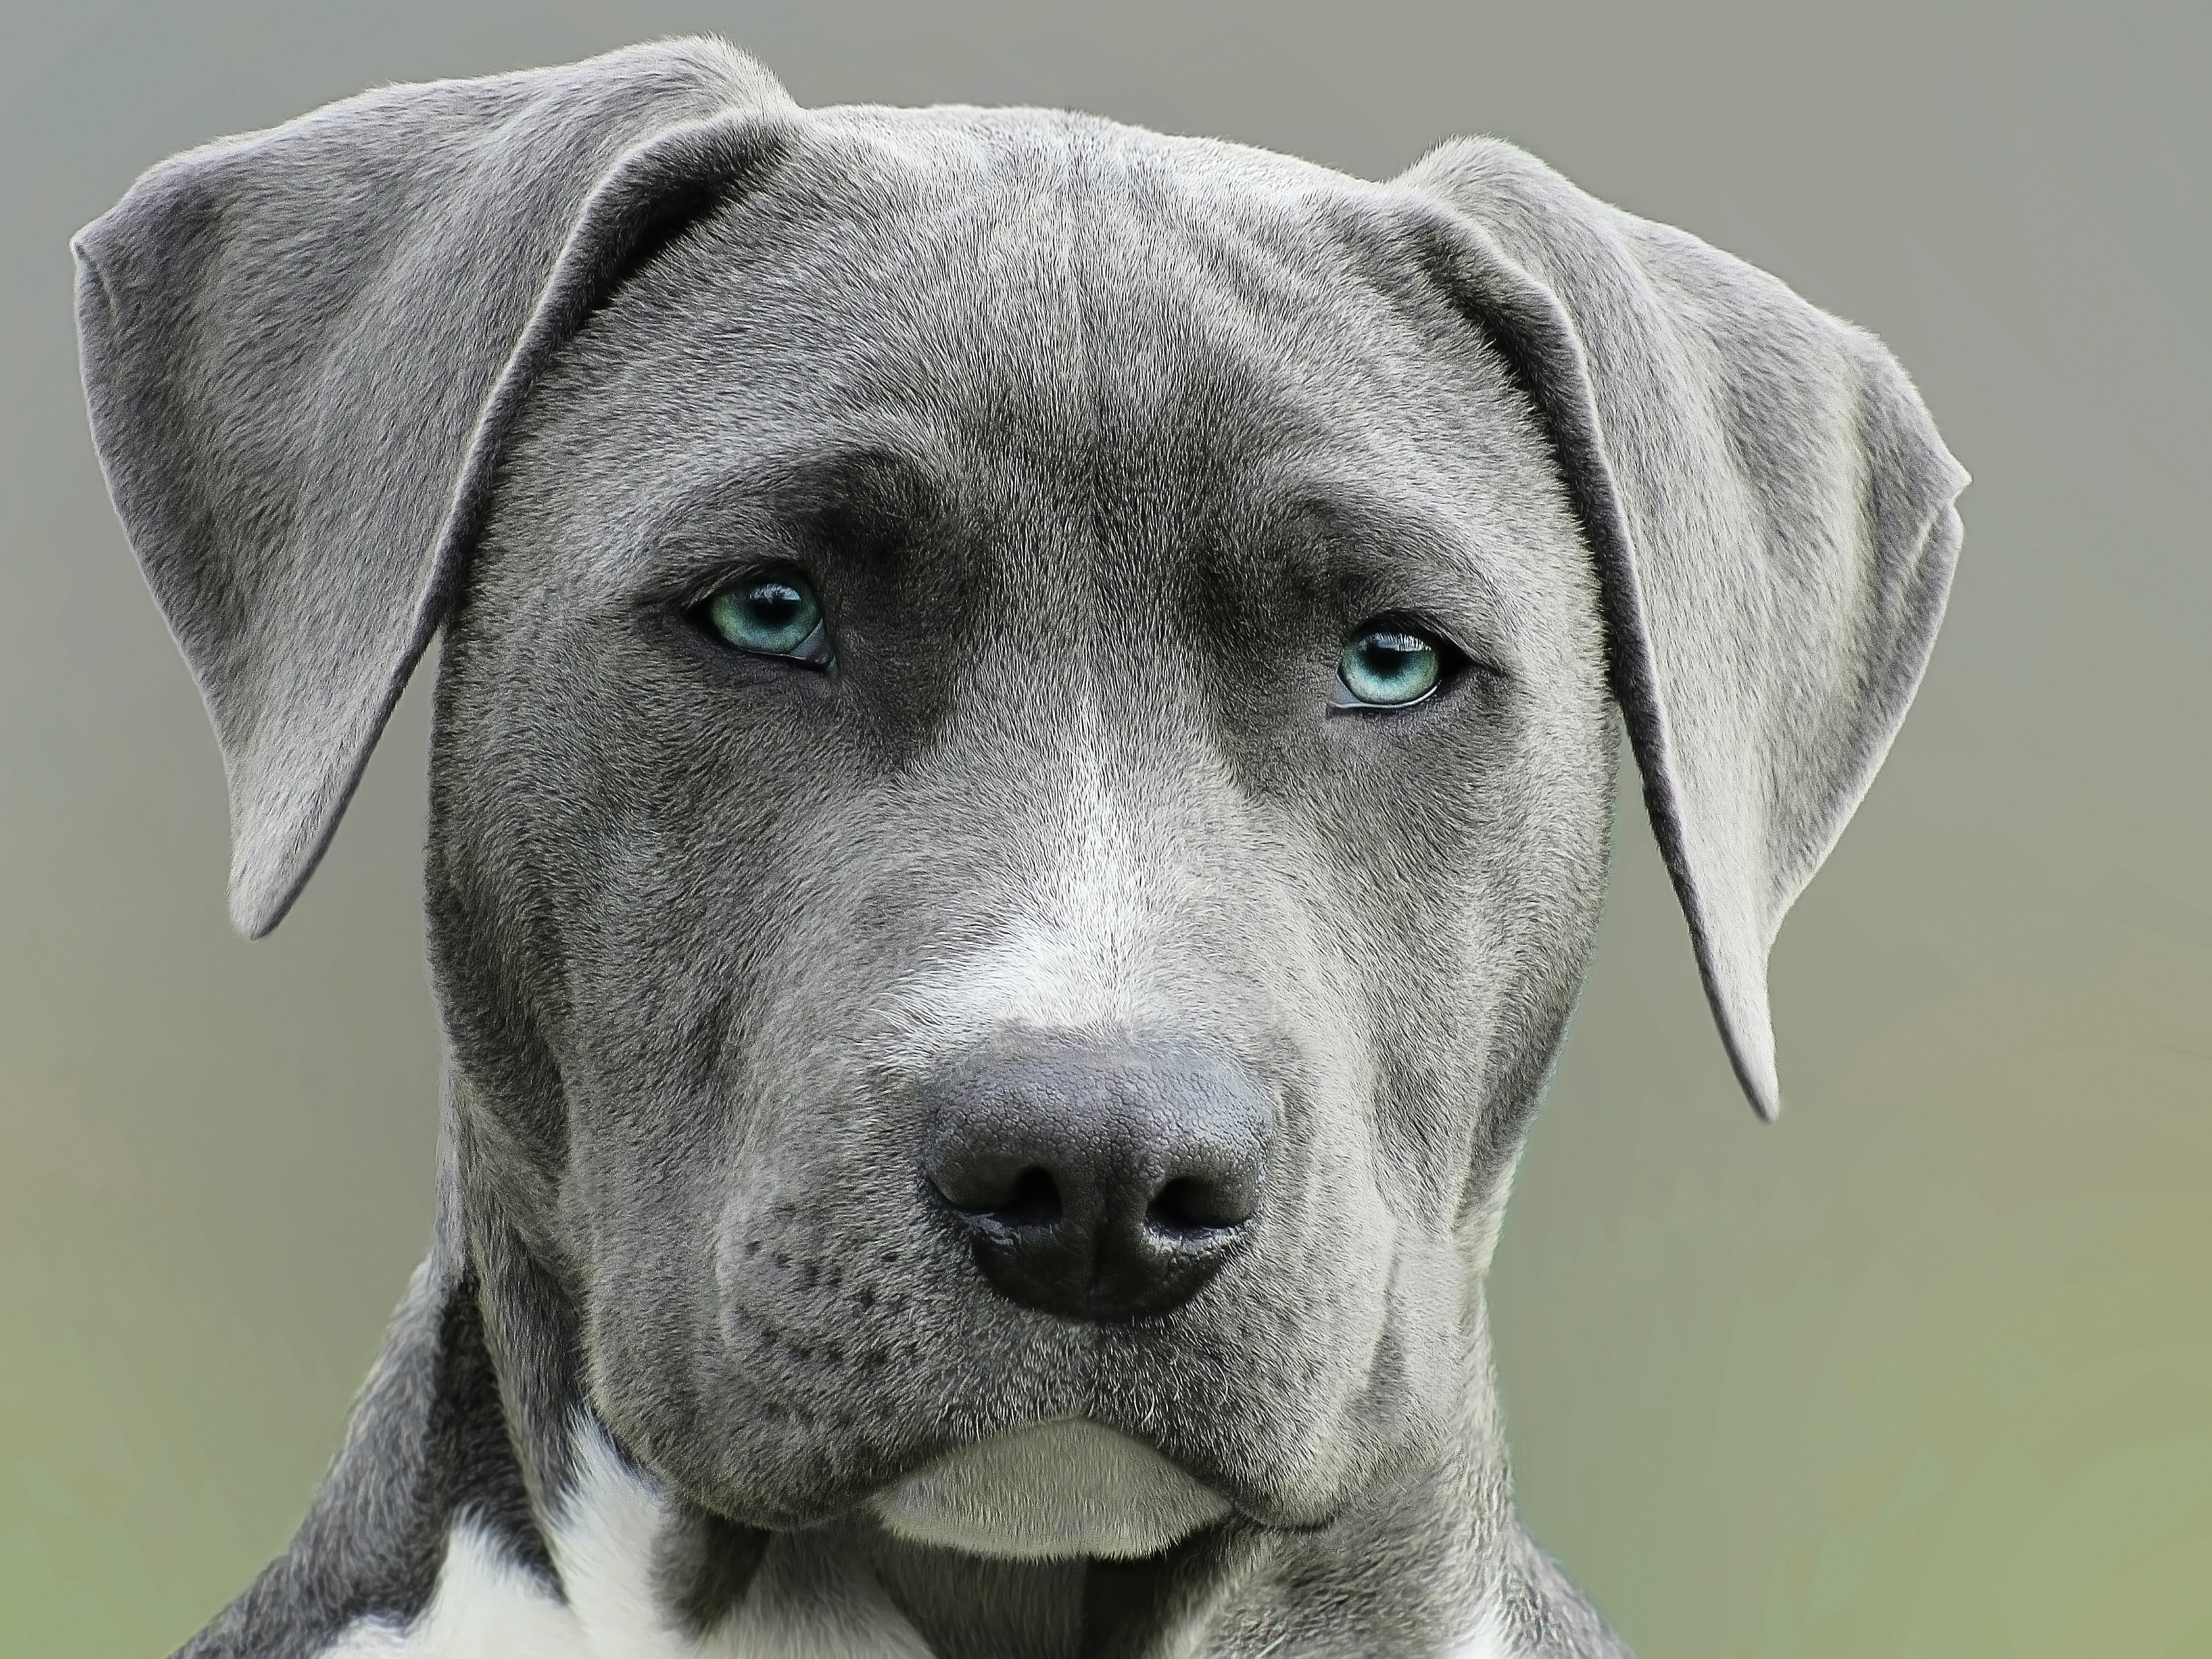 Gray Weimaraner dog with blue eyes stares obediently